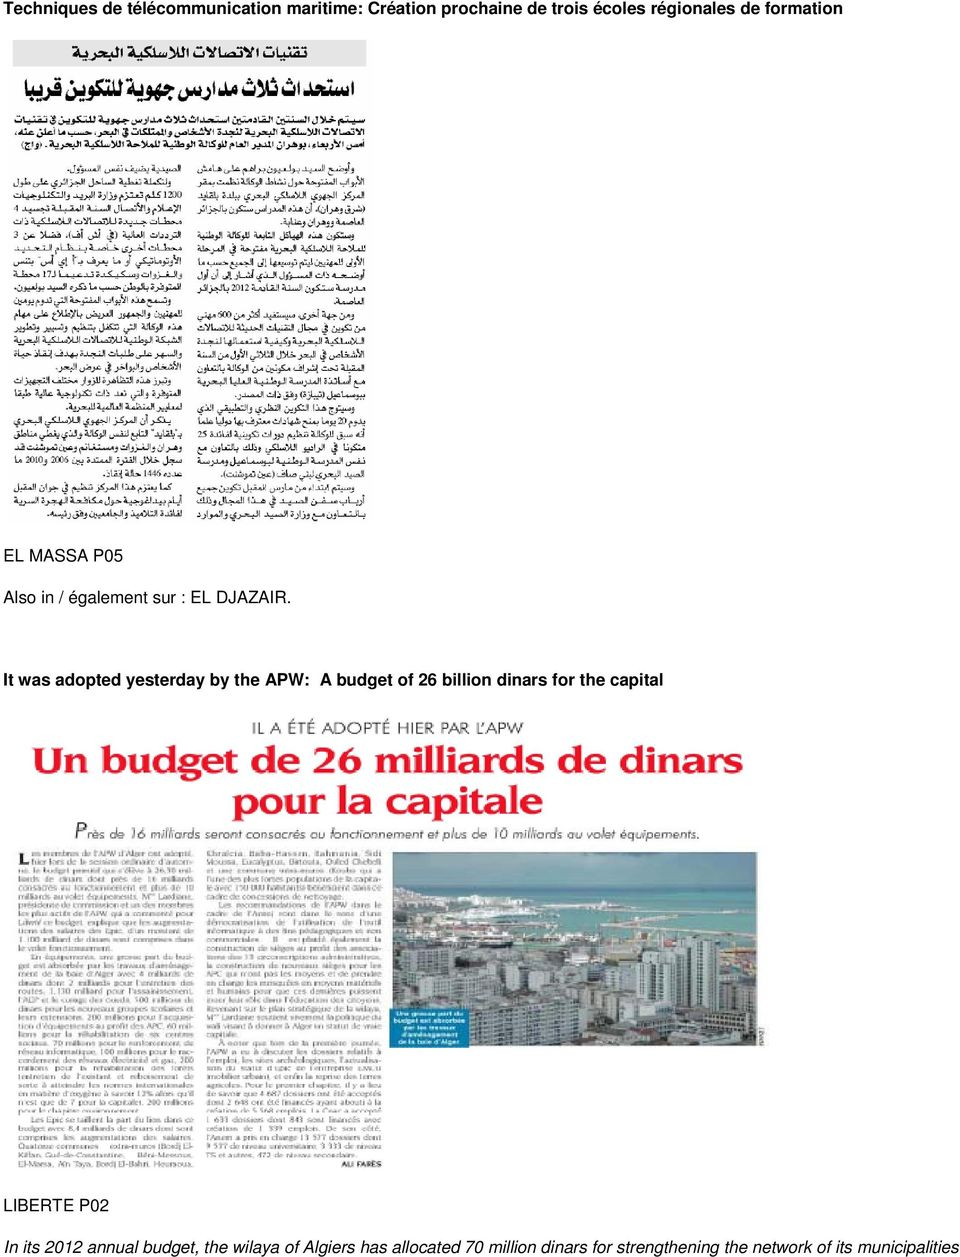 It was adopted yesterday by the APW: A budget of 26 billion dinars for the capital LIBERTE P02